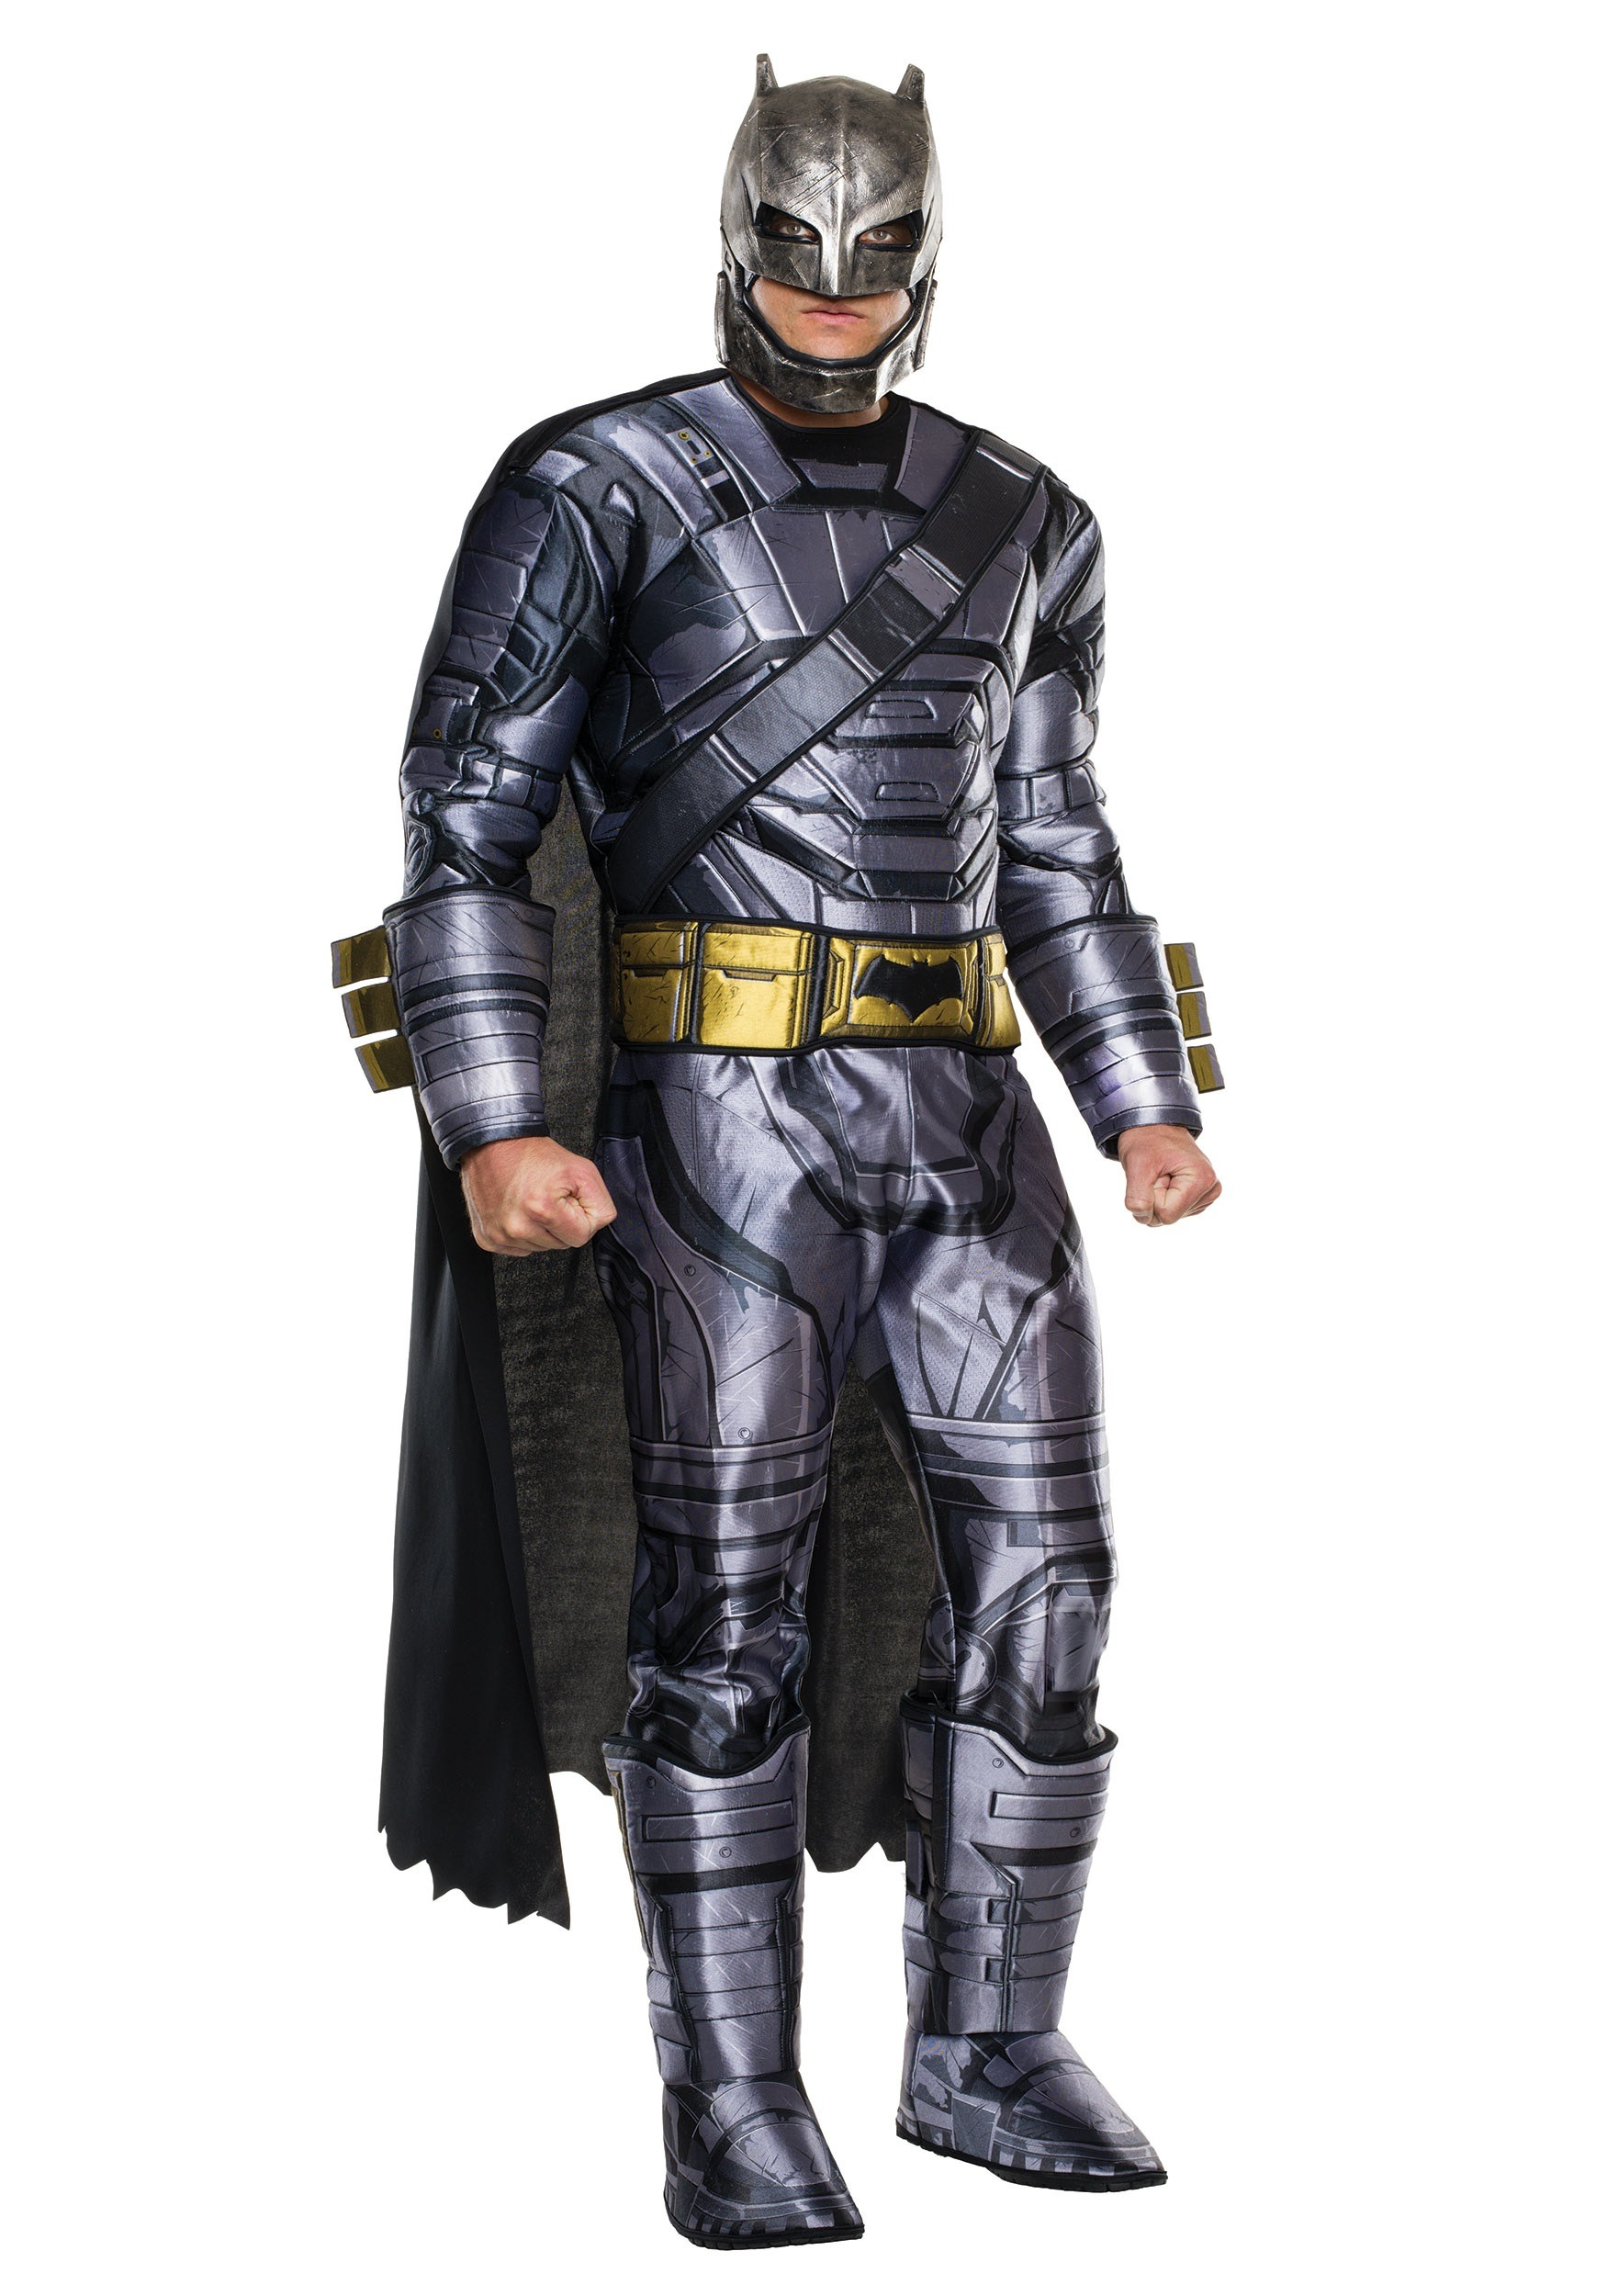 Men's Armored Batman Costume RU810927